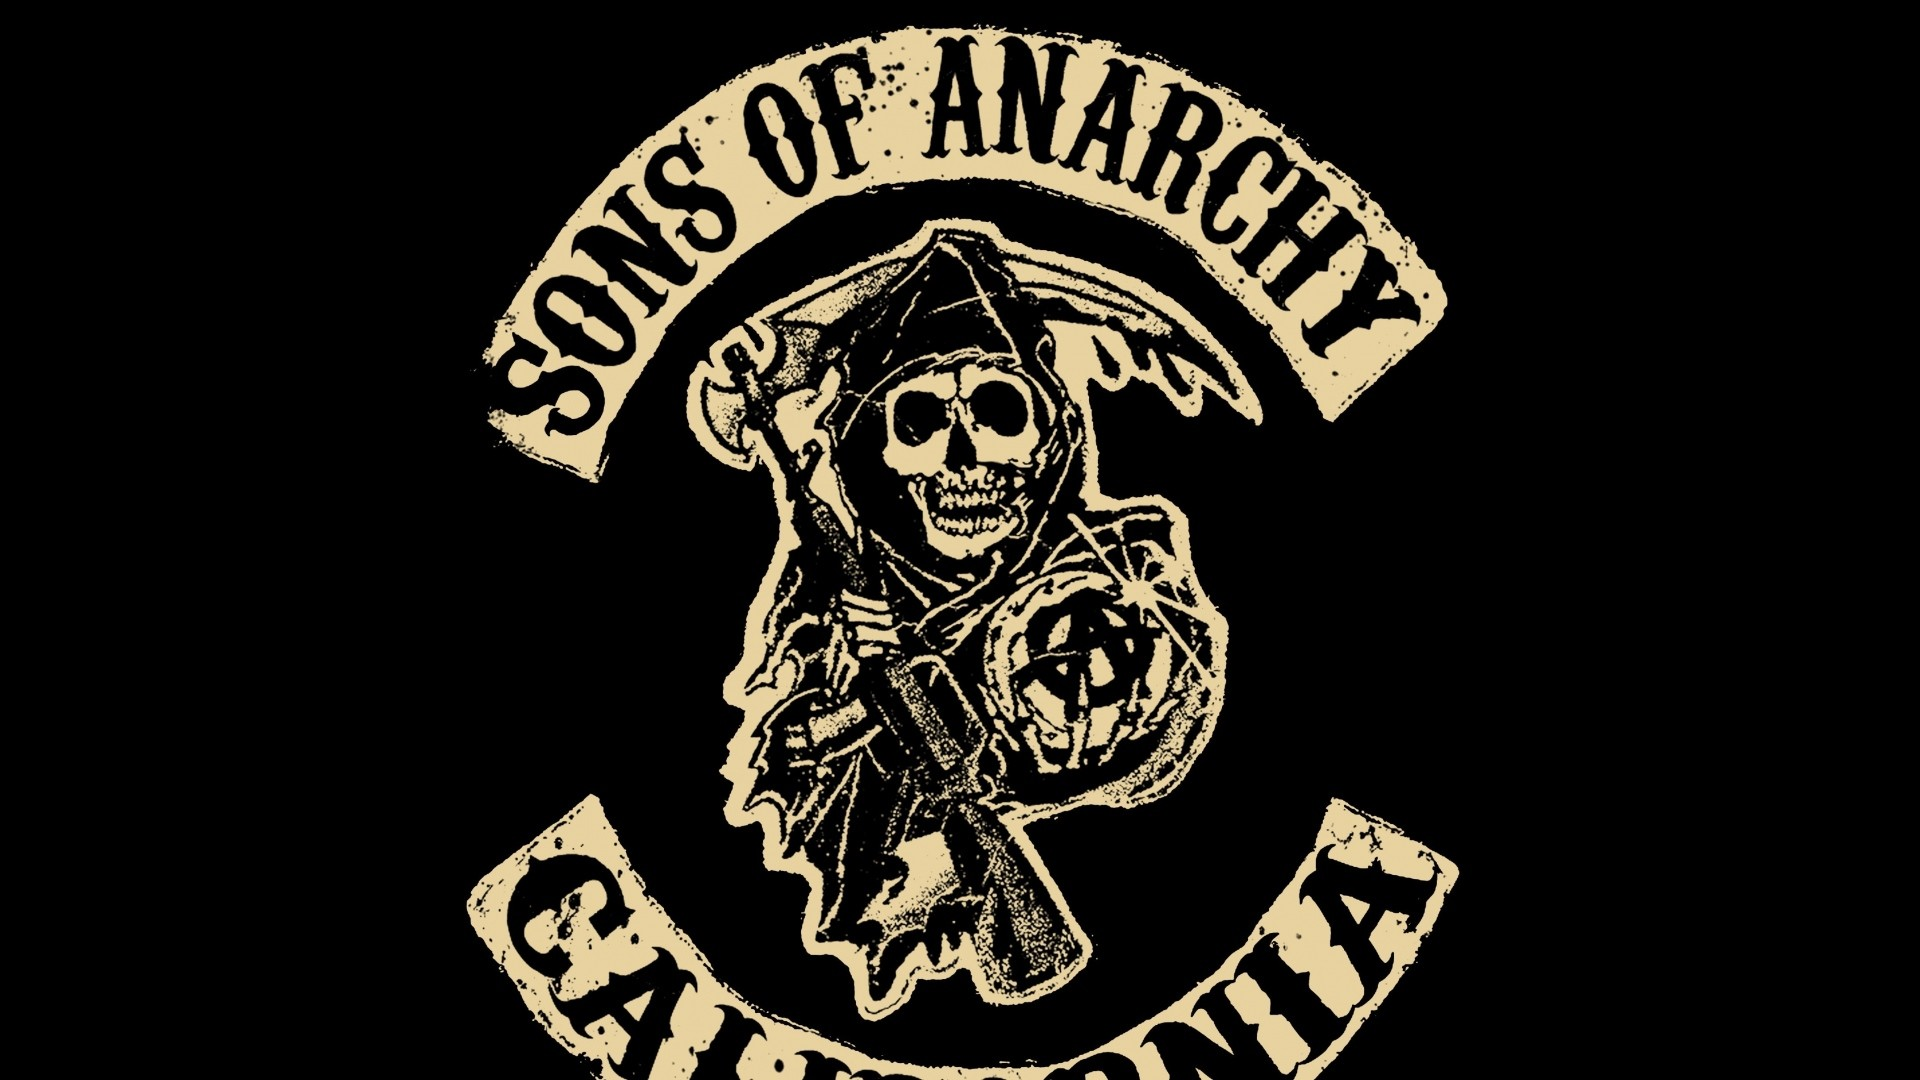 p.416, Anarchy Flag Wallpapers, Anarchy Flag Widescreen Backgrounds